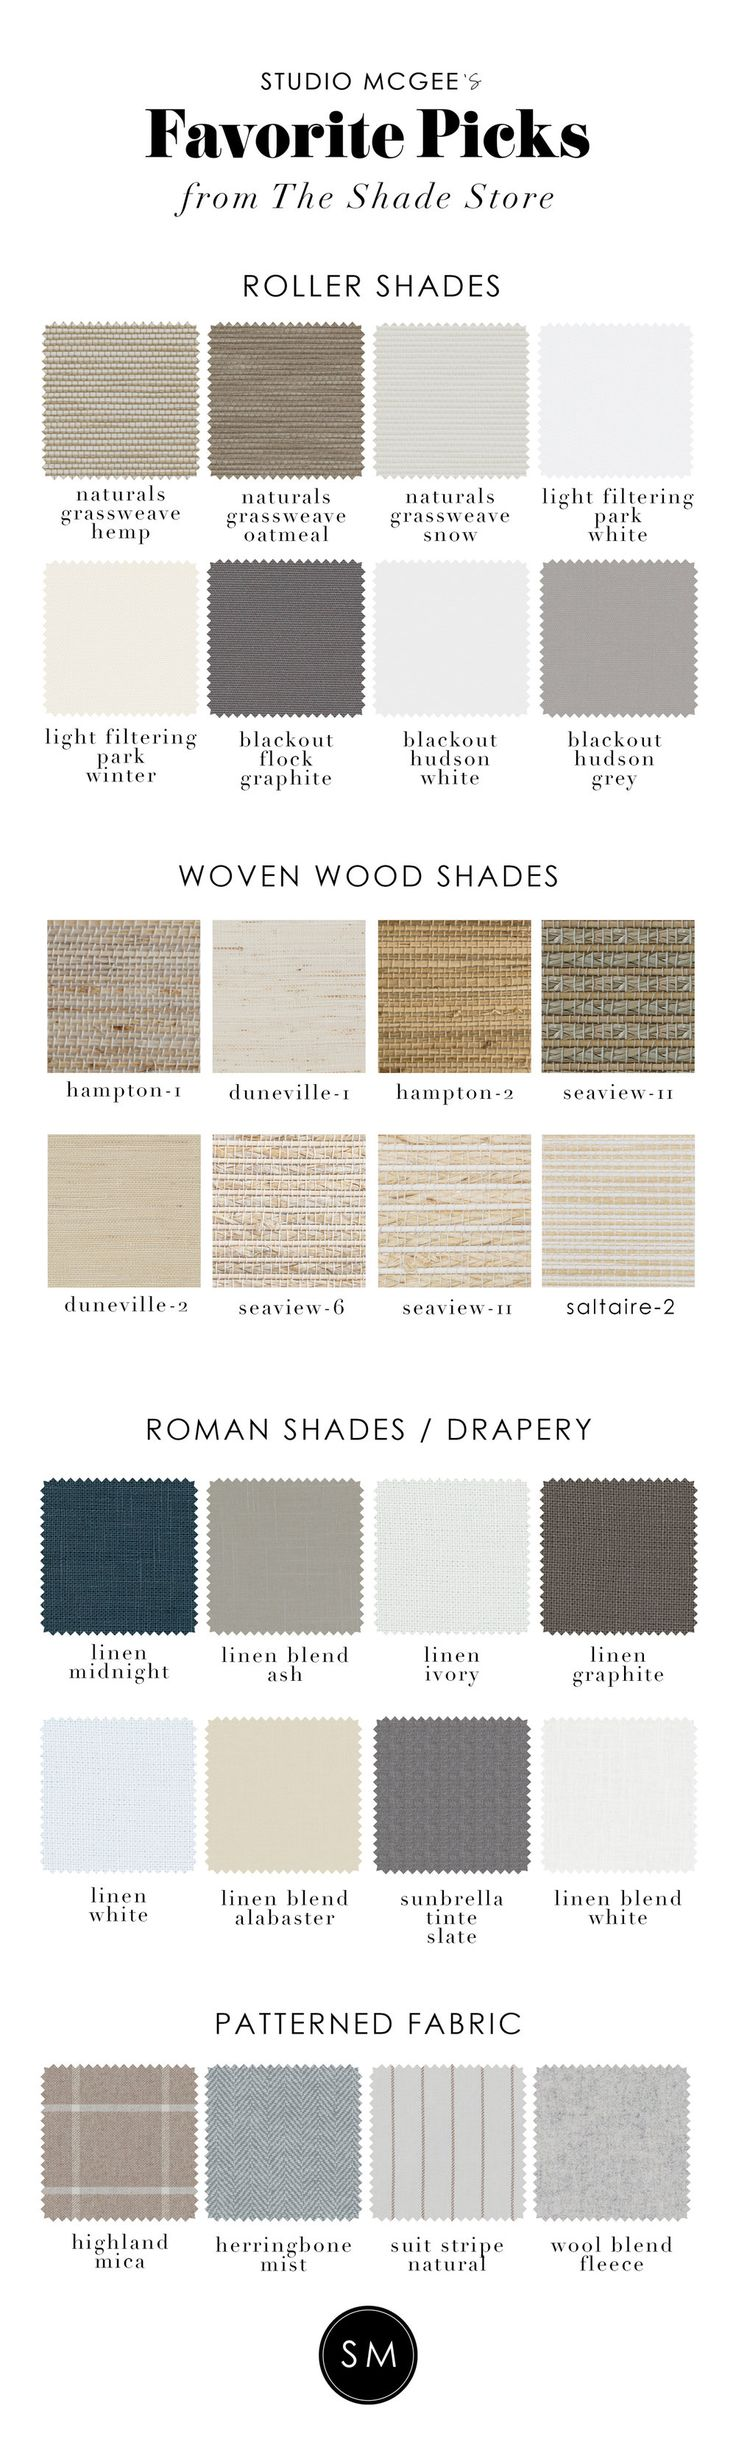 Our Favorite Picks from The Shade Store — STUDIO MCGEE